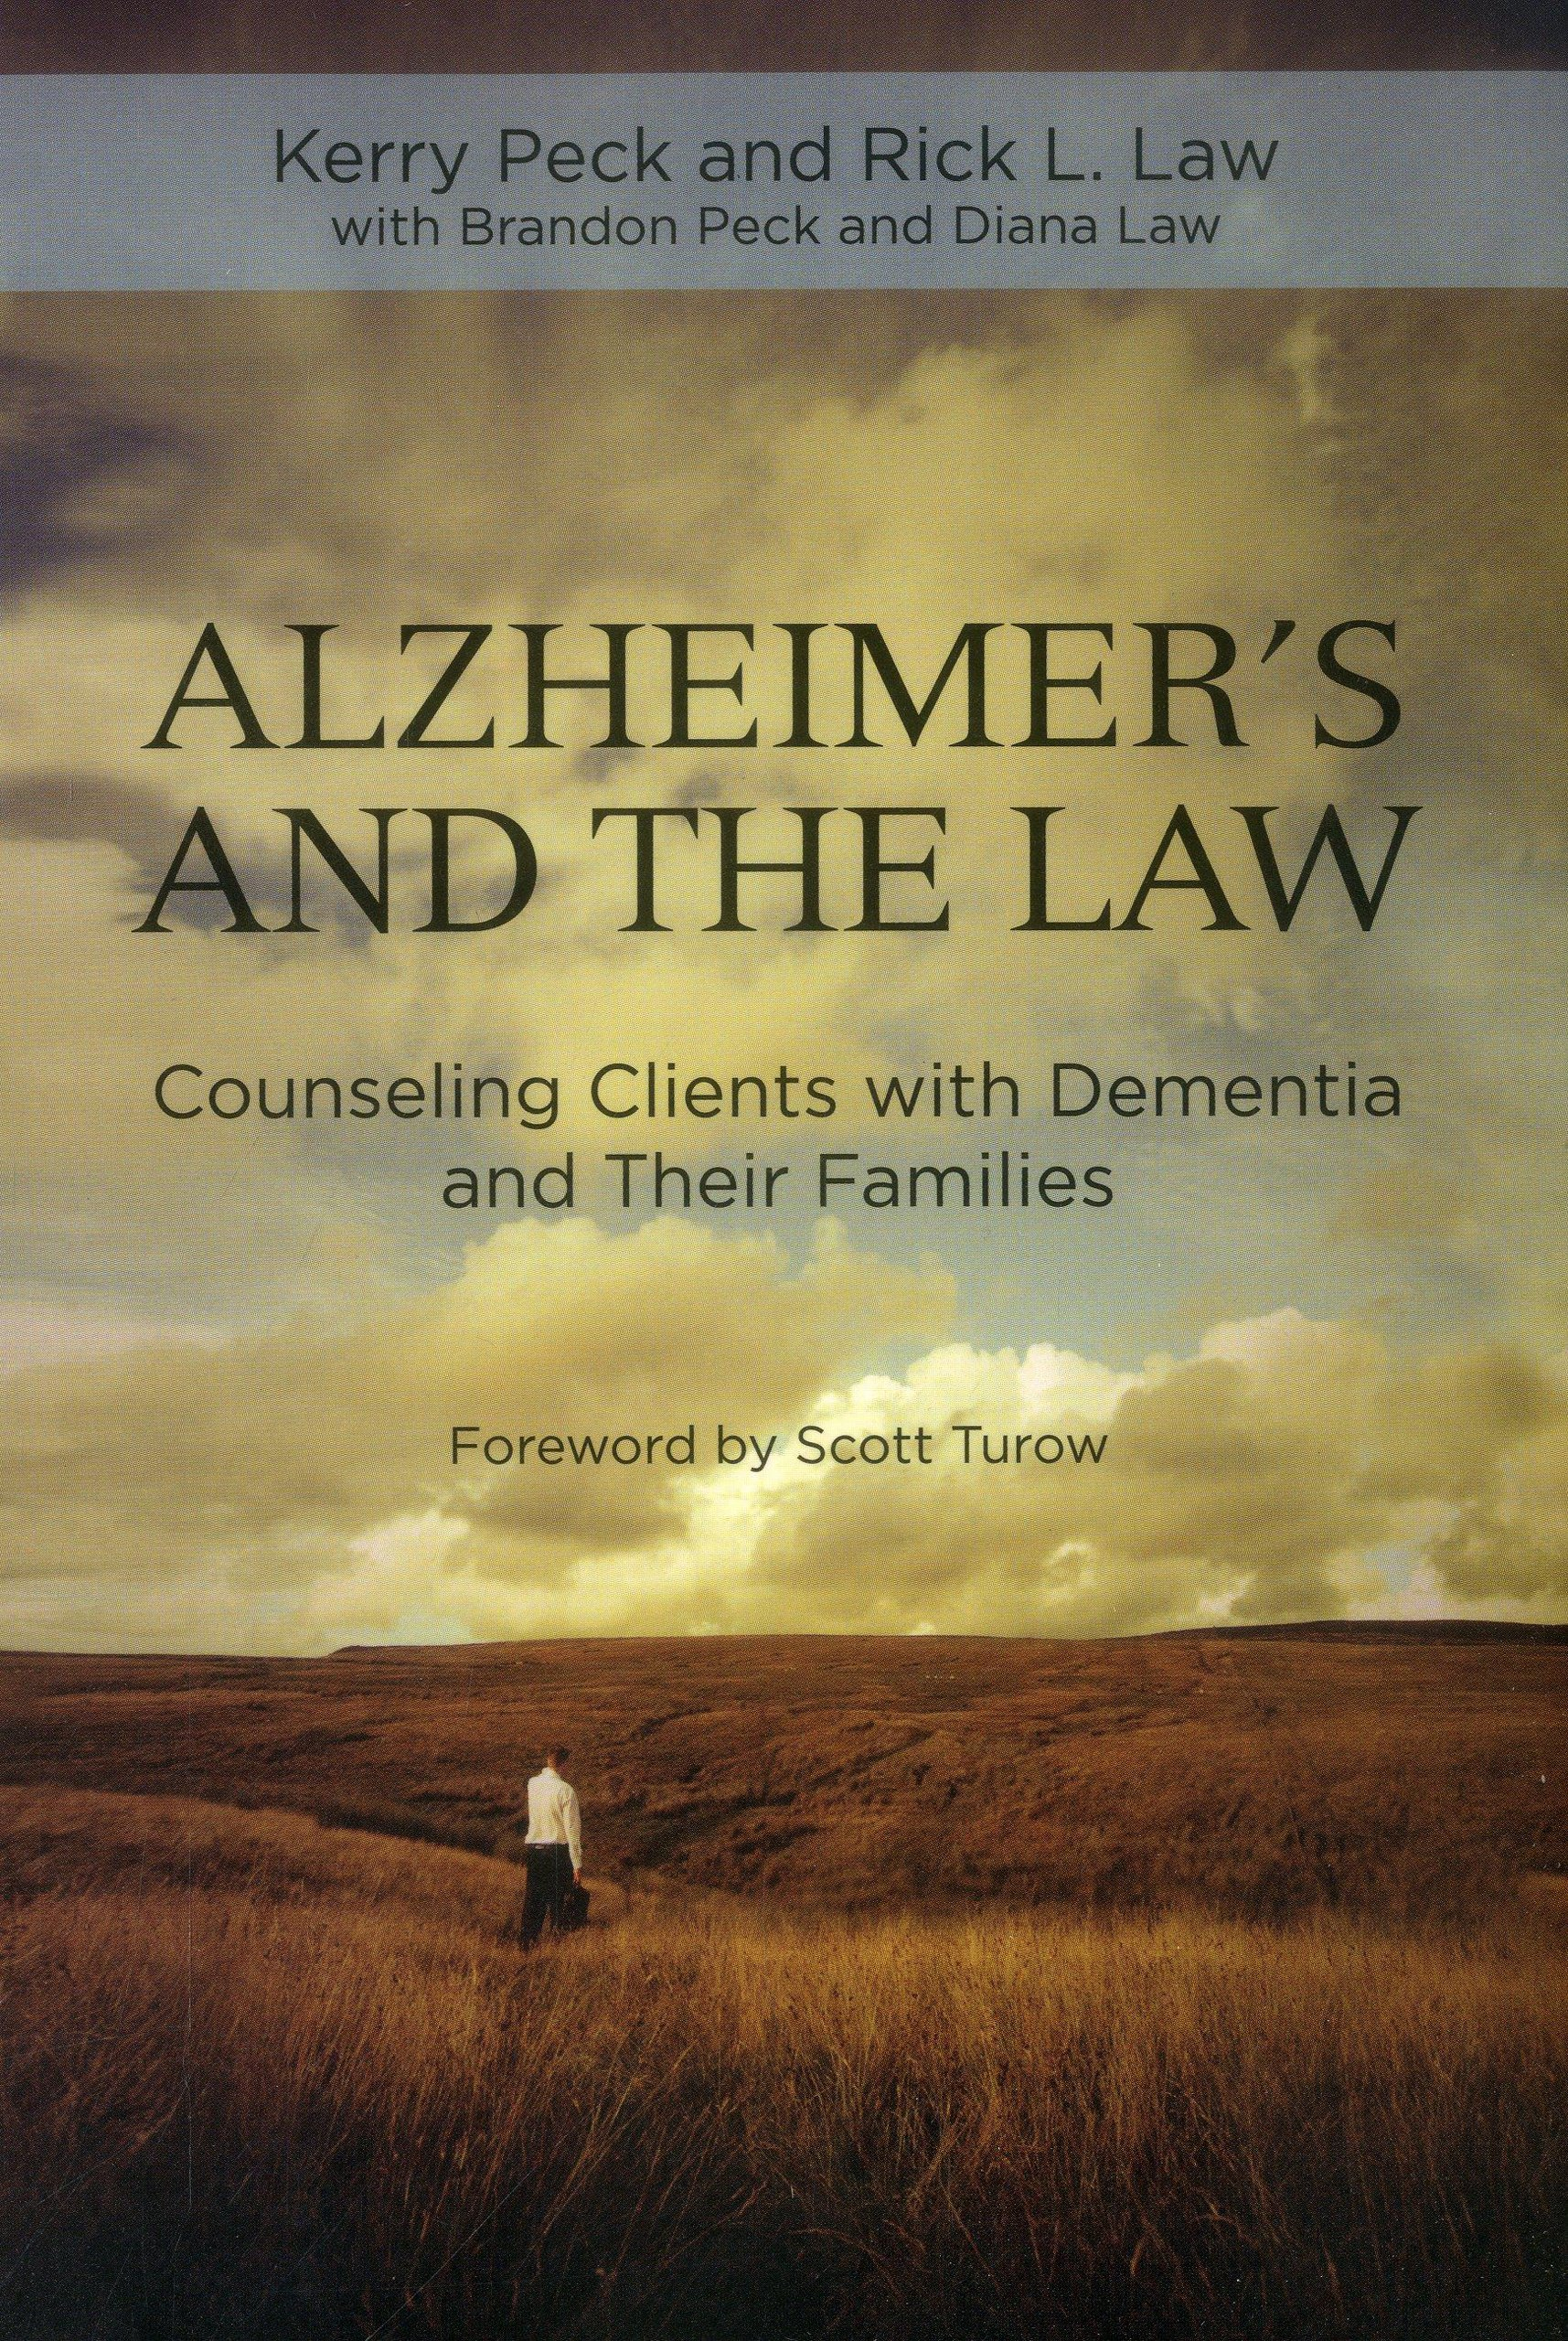 Alzheimer's and the Law: Counseling Clients with Dementia and Their Families